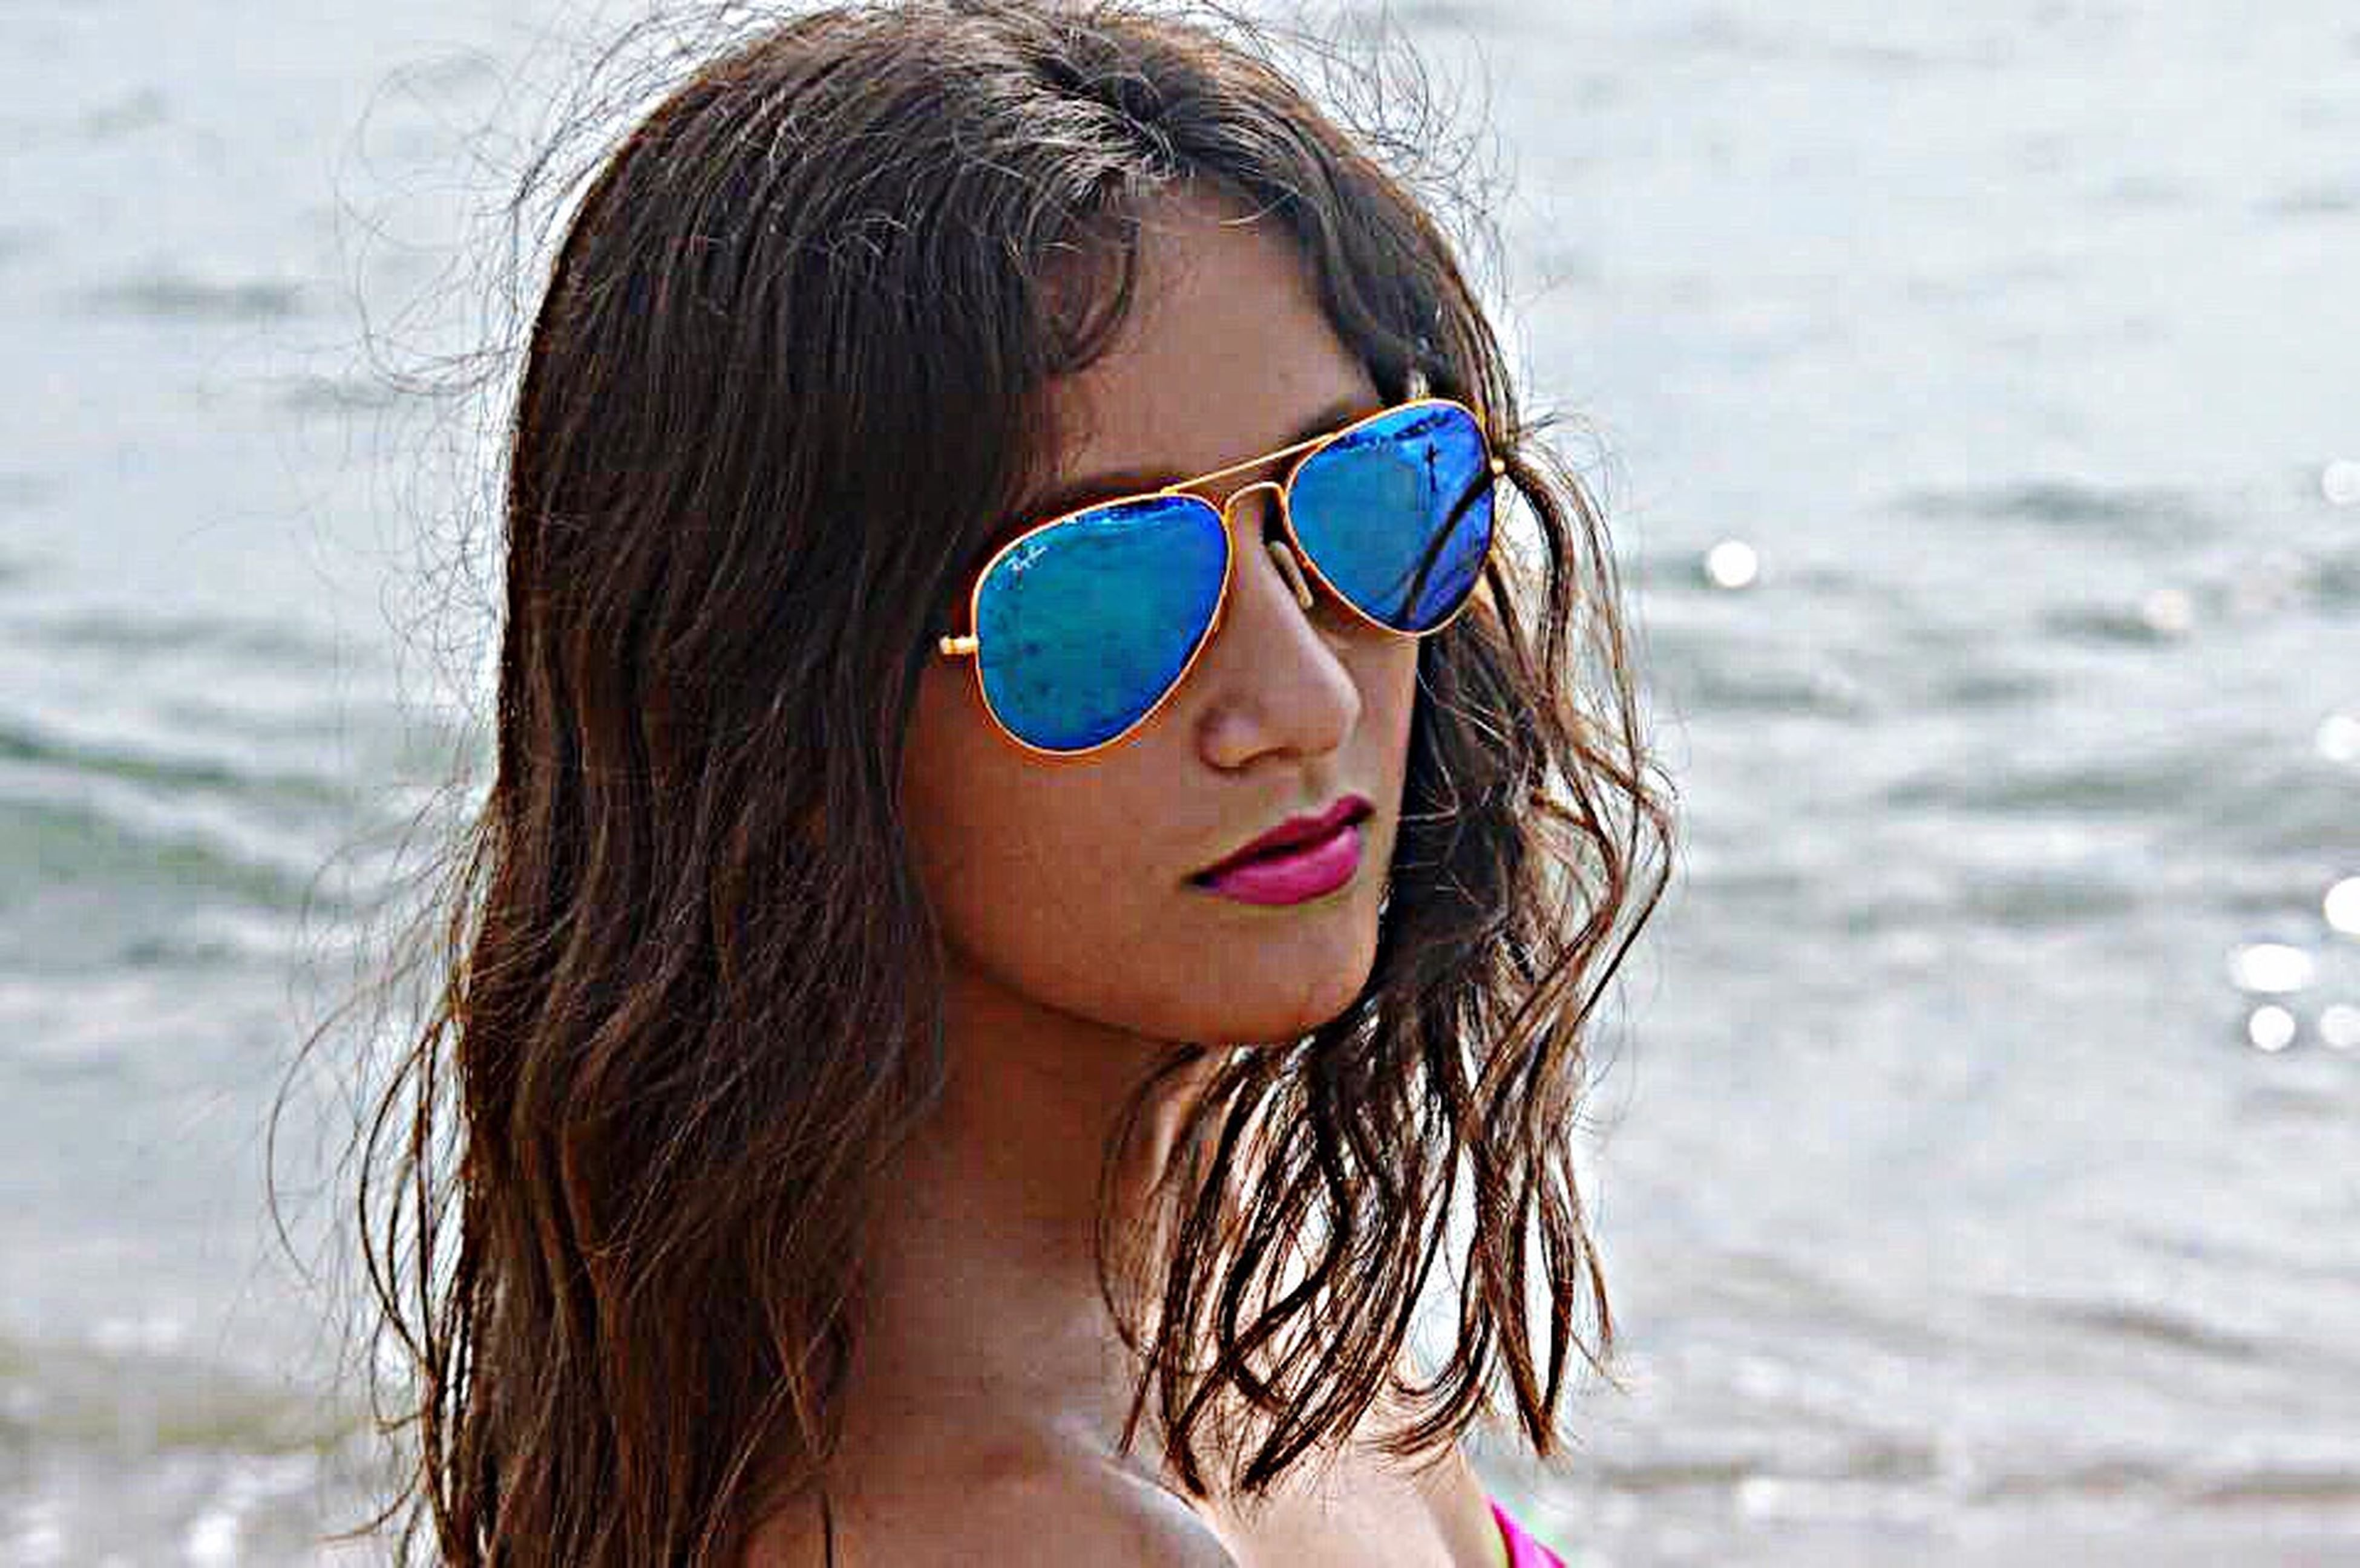 headshot, young adult, focus on foreground, person, lifestyles, long hair, young women, leisure activity, sunglasses, close-up, portrait, front view, looking at camera, head and shoulders, brown hair, blond hair, beauty